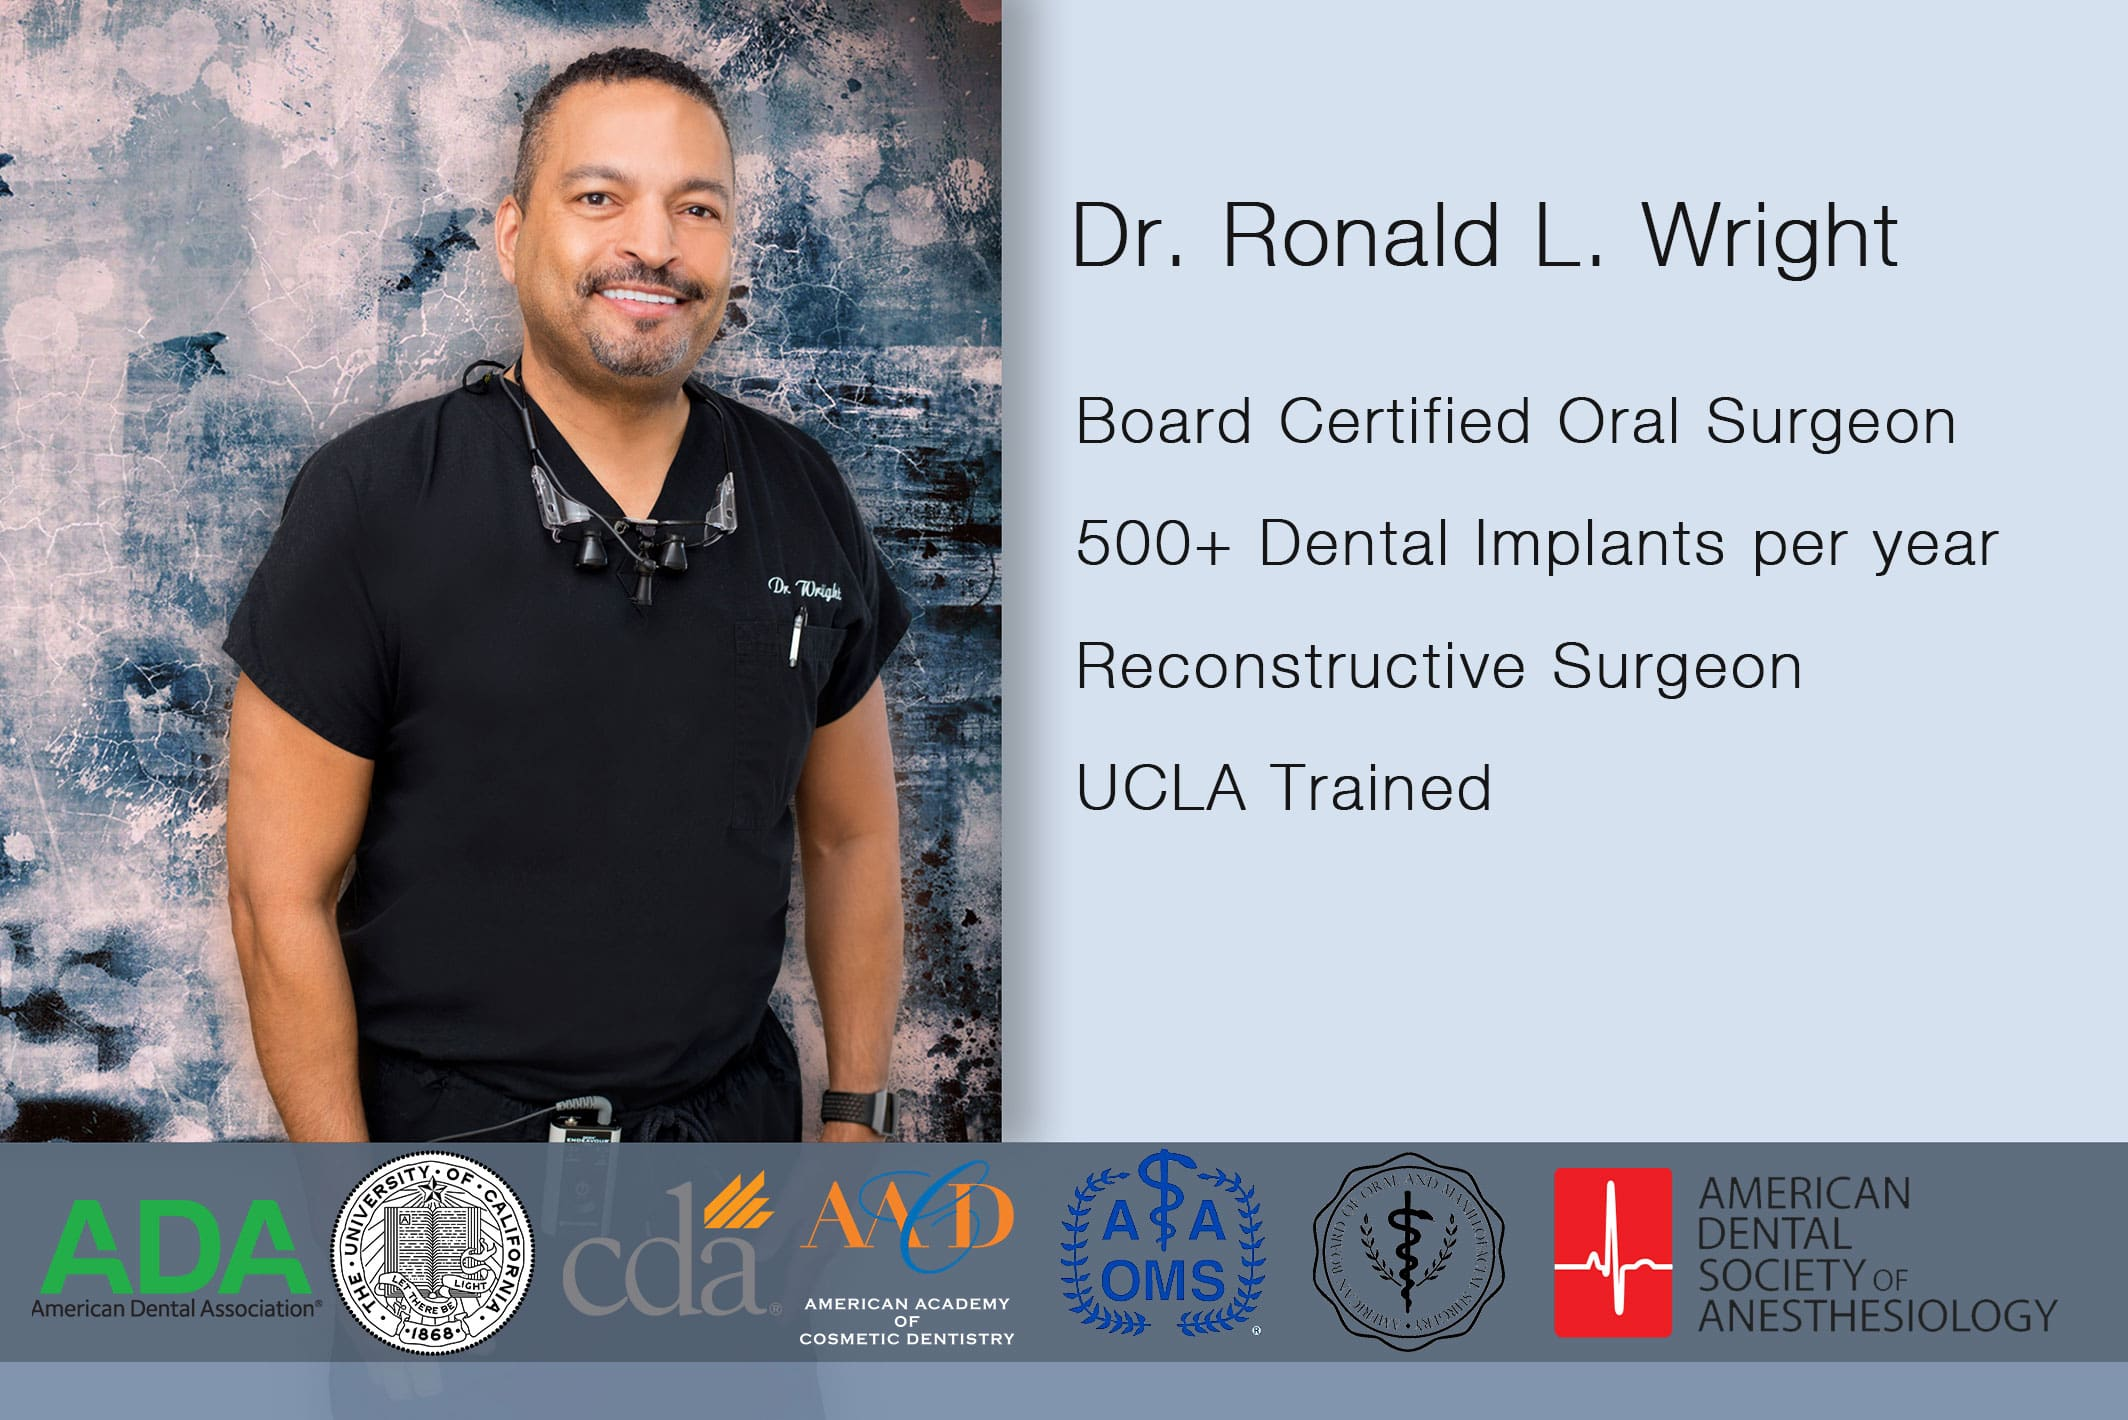 dr.wright credentials